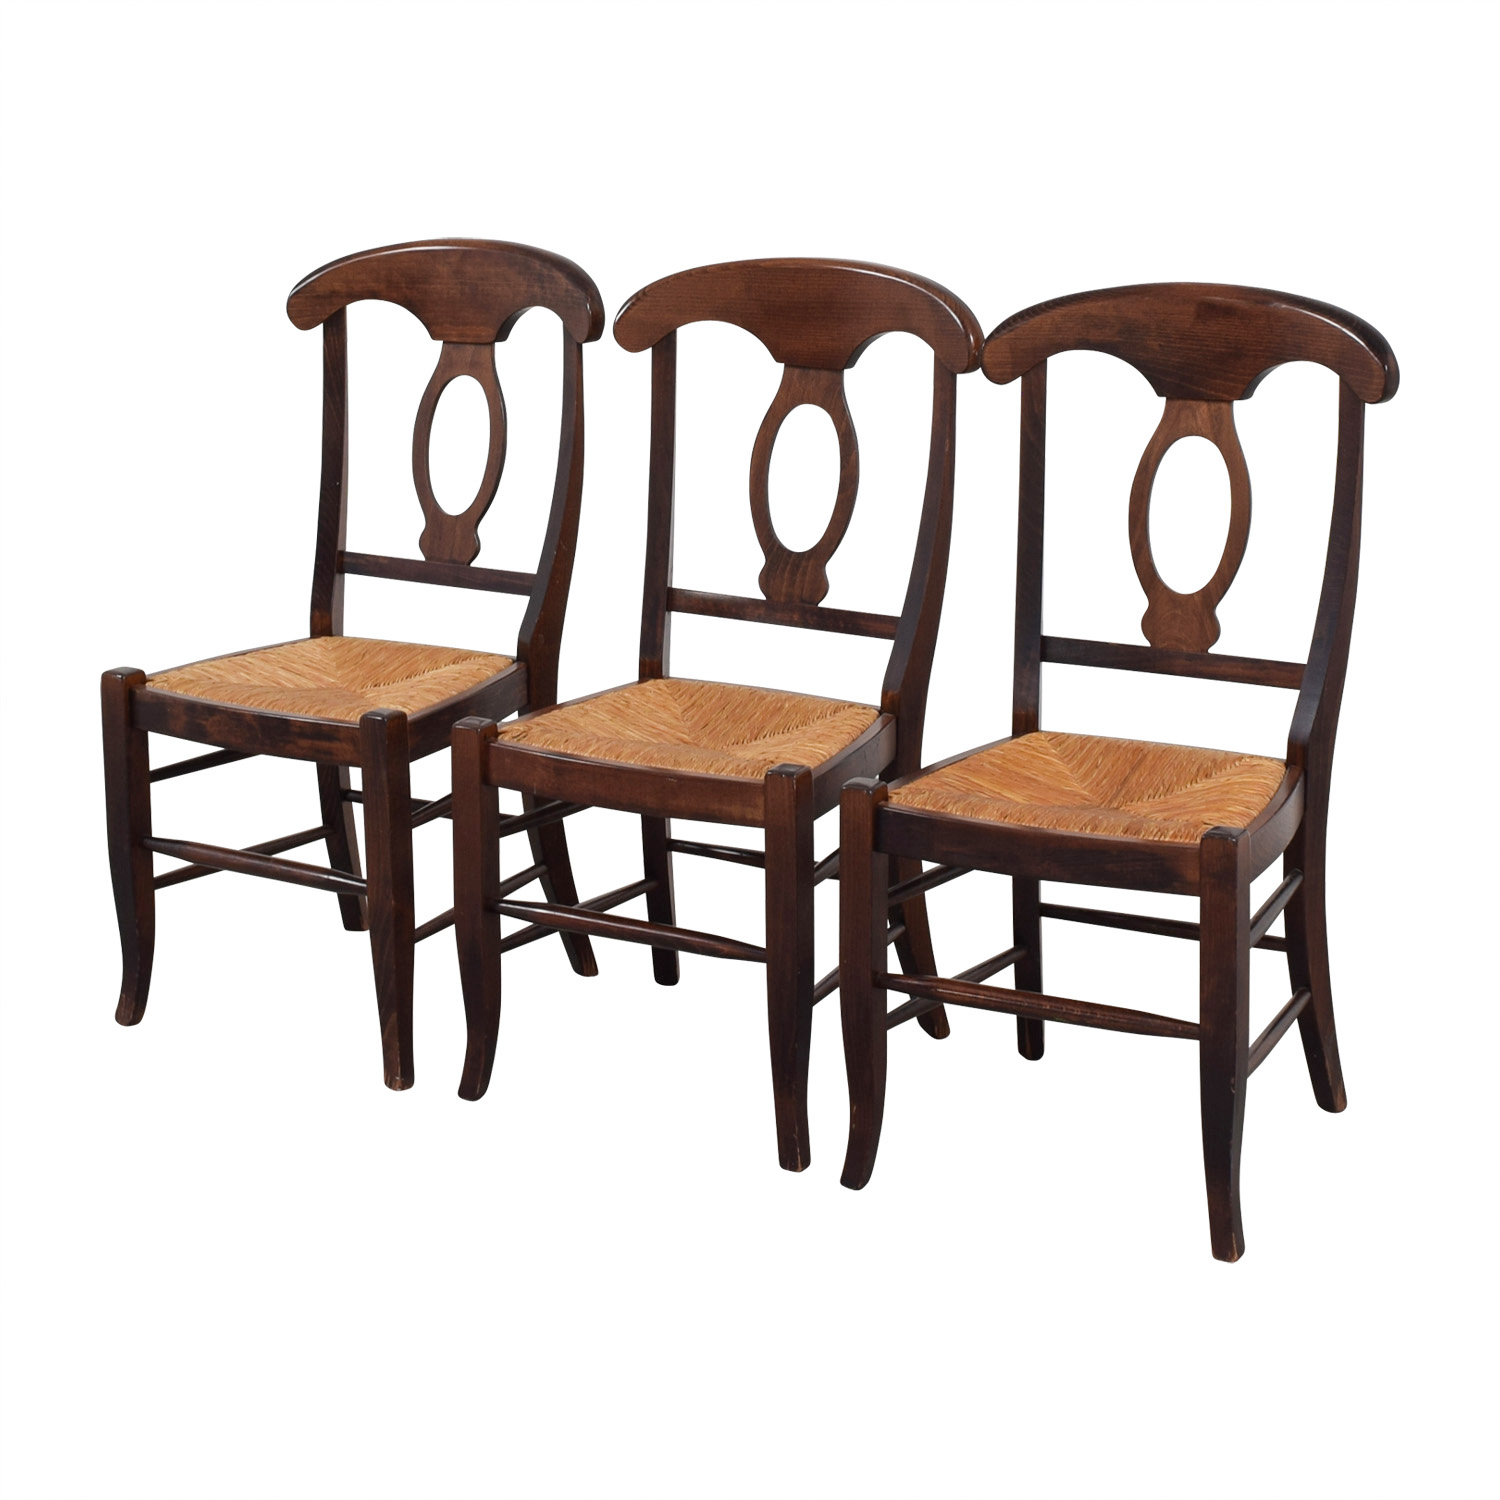 89 OFF  Pottery Barn Pottery Barn Napoleon Chairs  Chairs